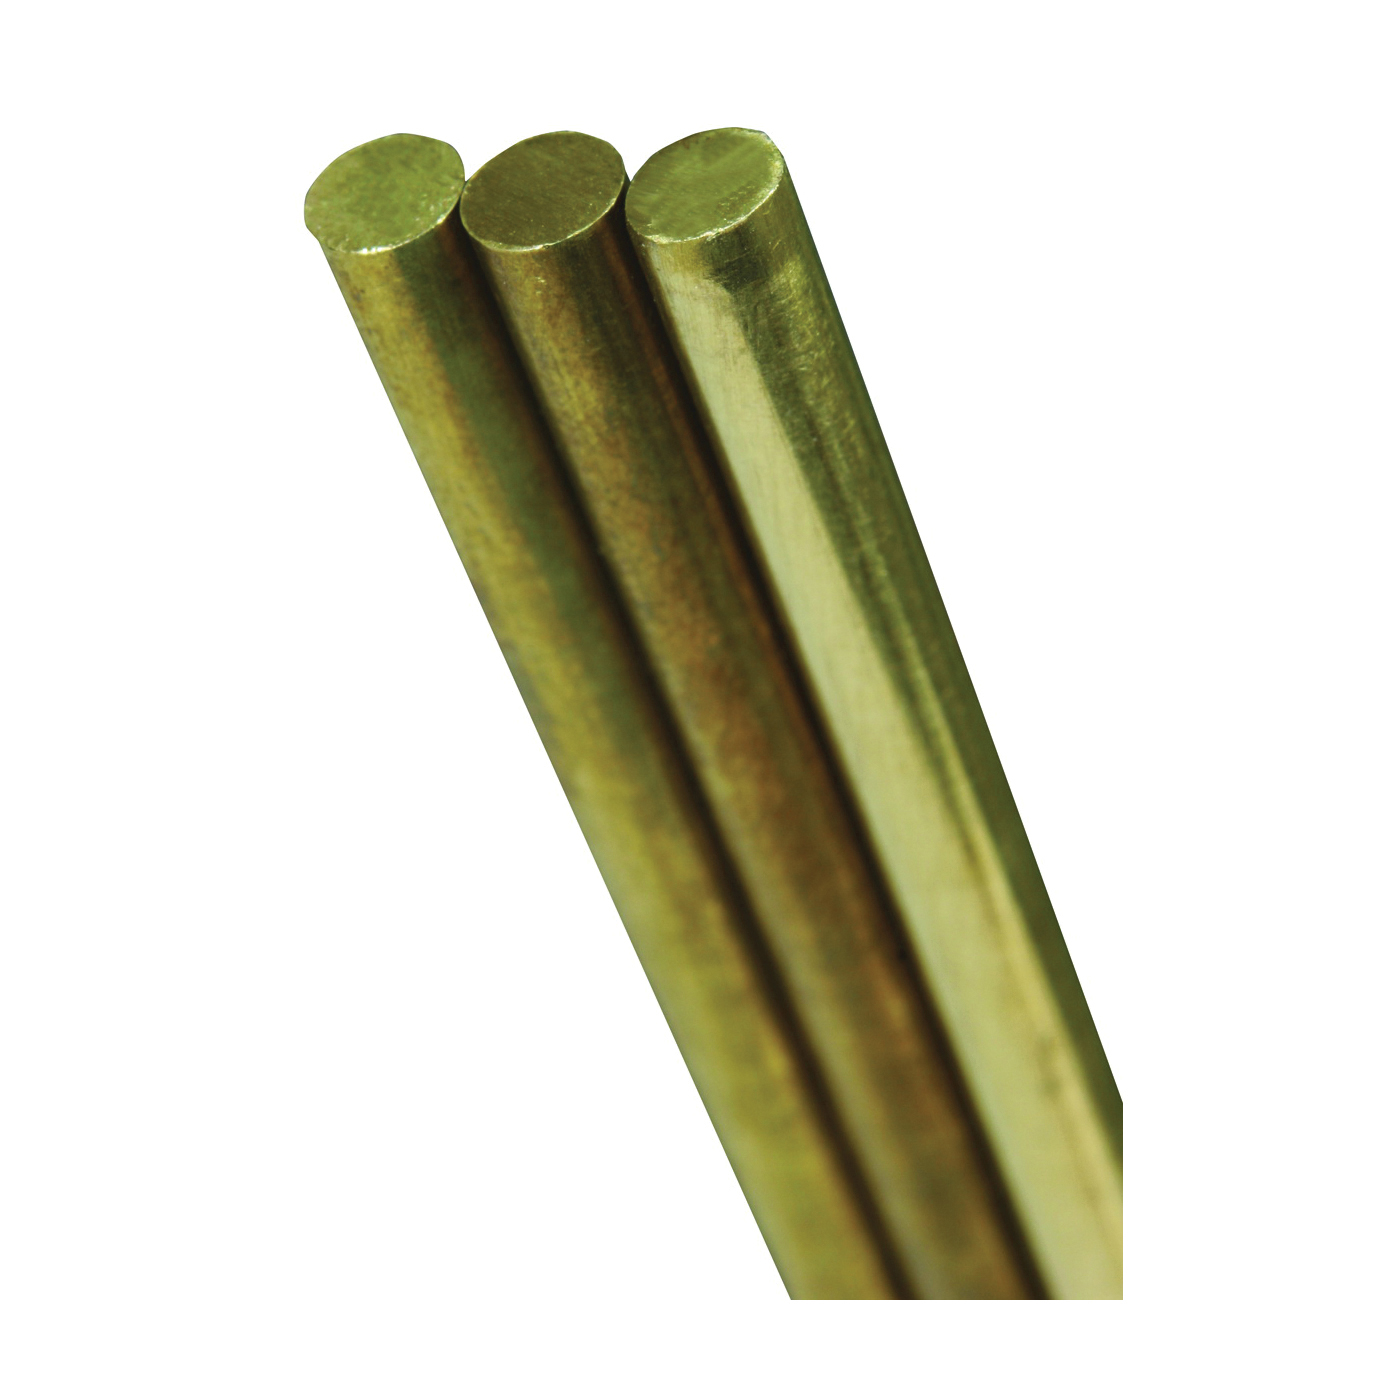 Picture of K & S 1166 Round Rod, 5/16 in Dia, 36 in L, 260 Brass, 260 Grade